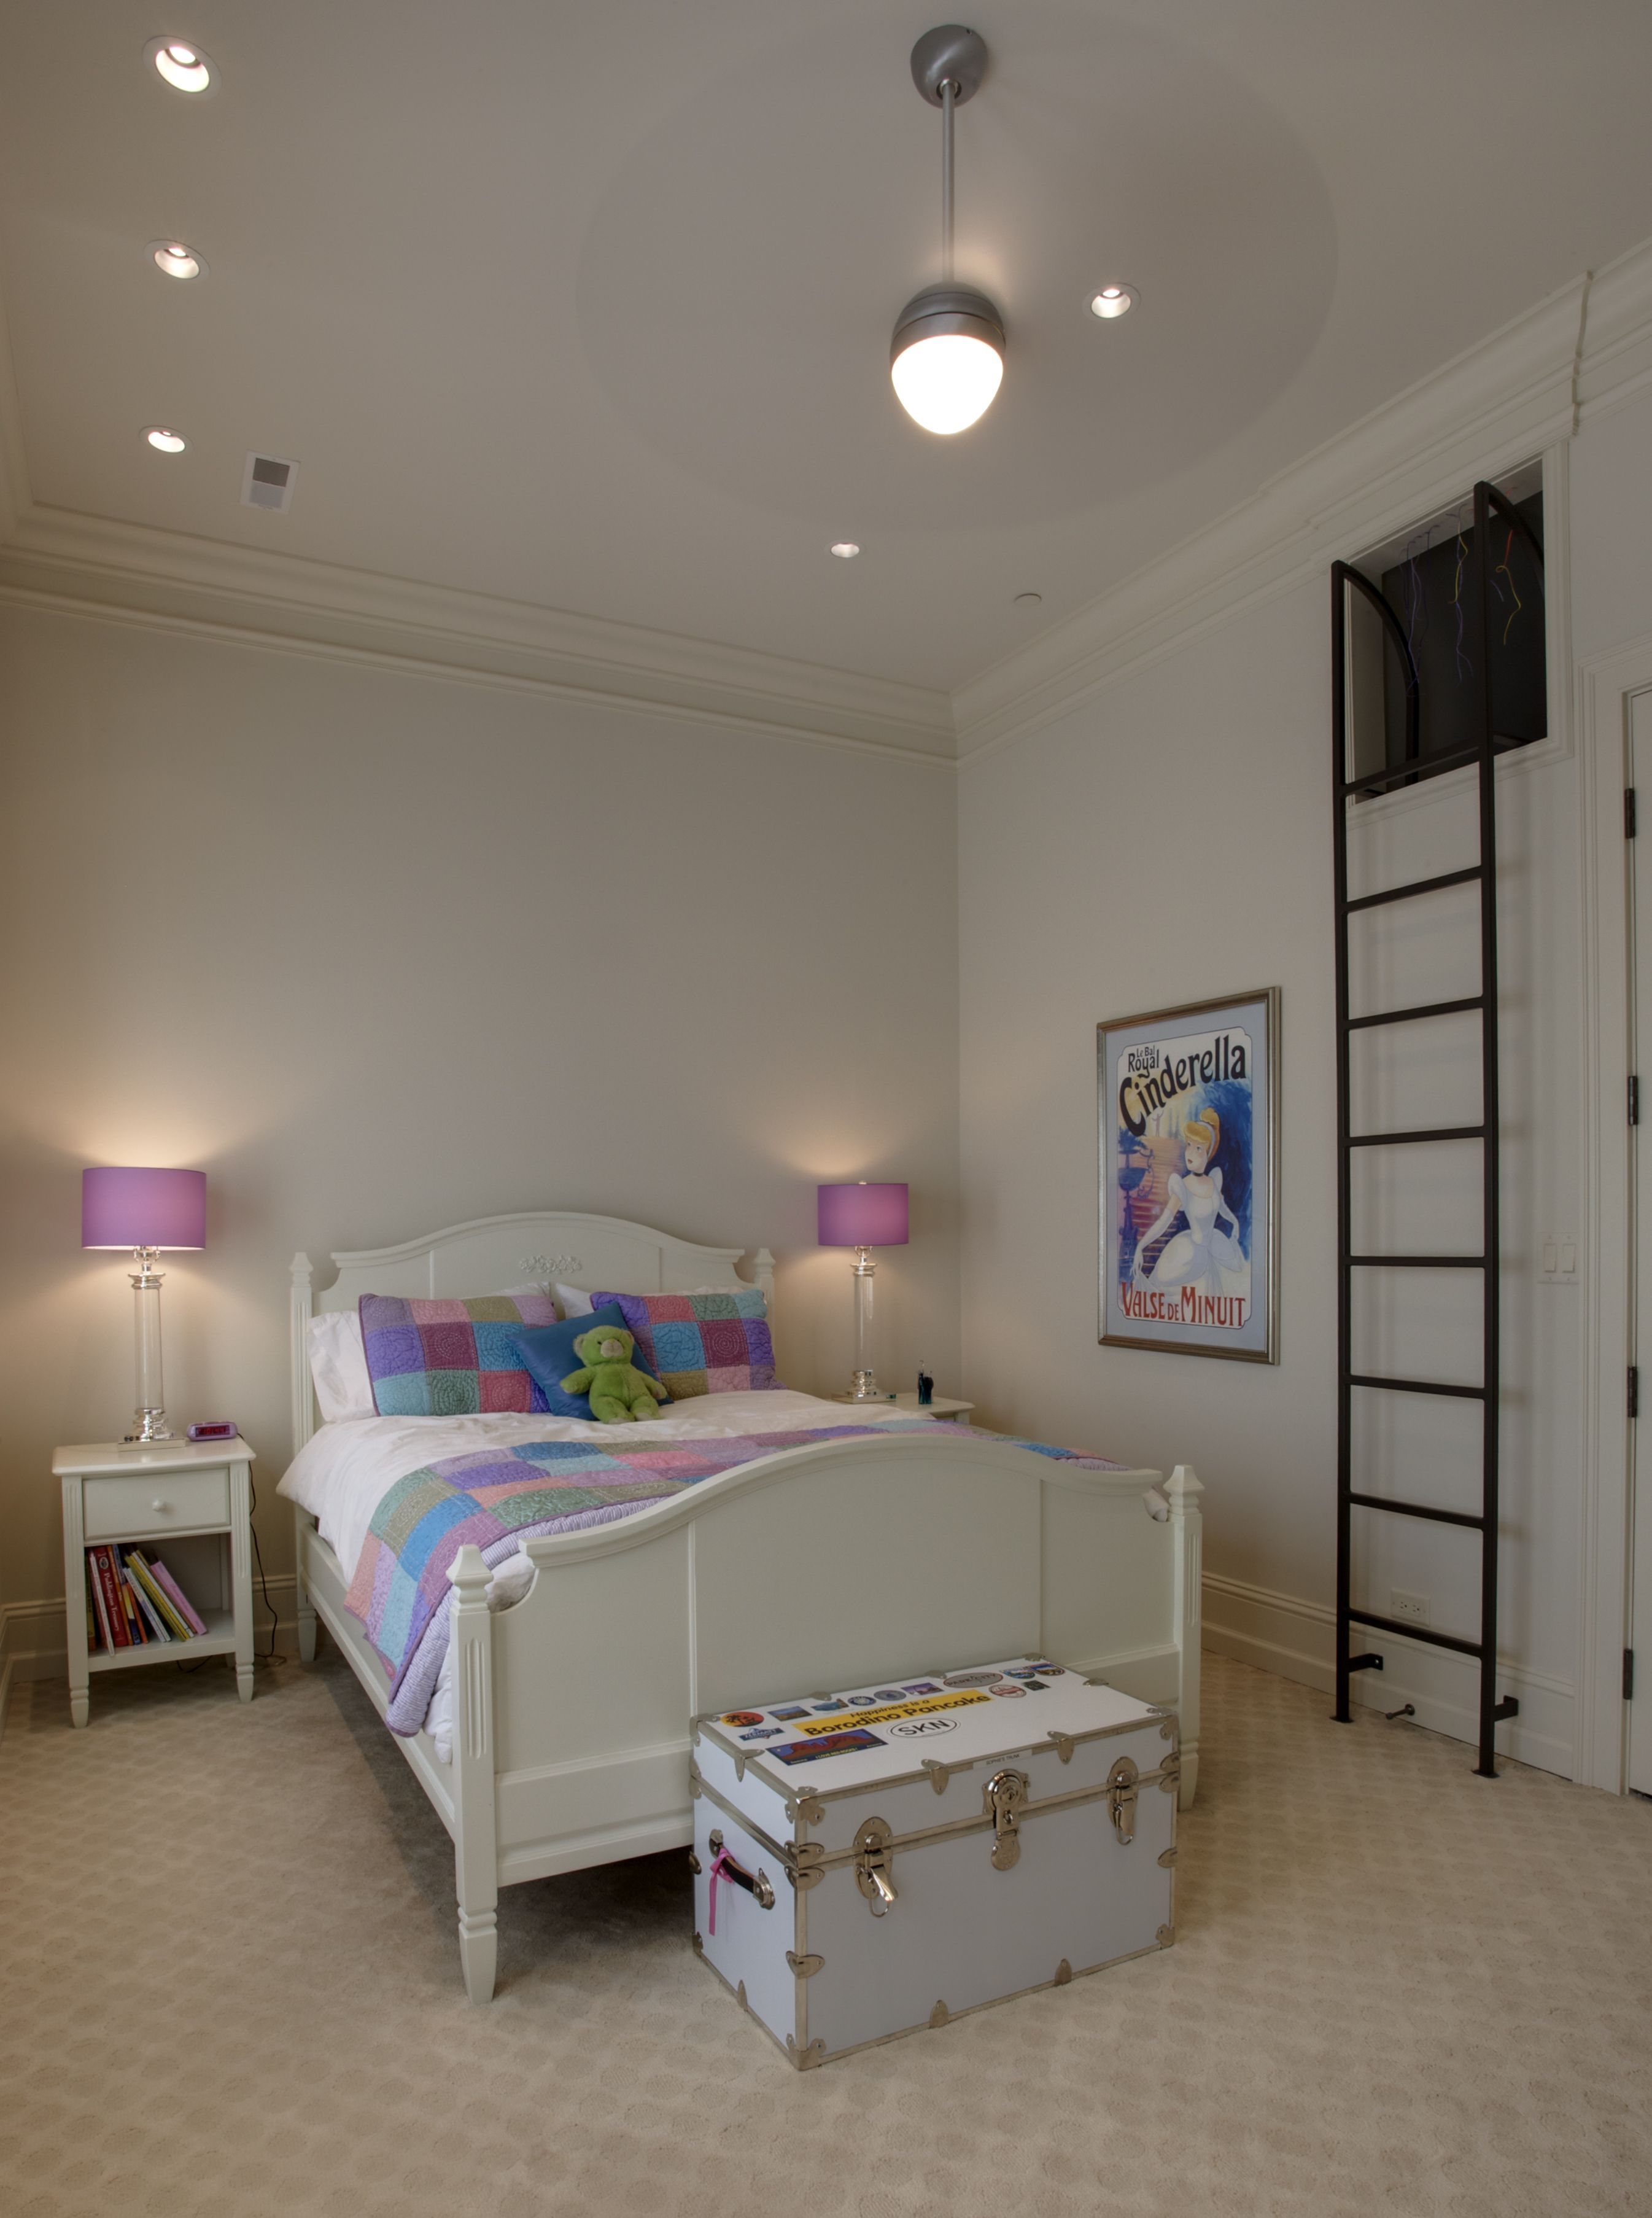 Lg construction development fun girls bedroom with secret play